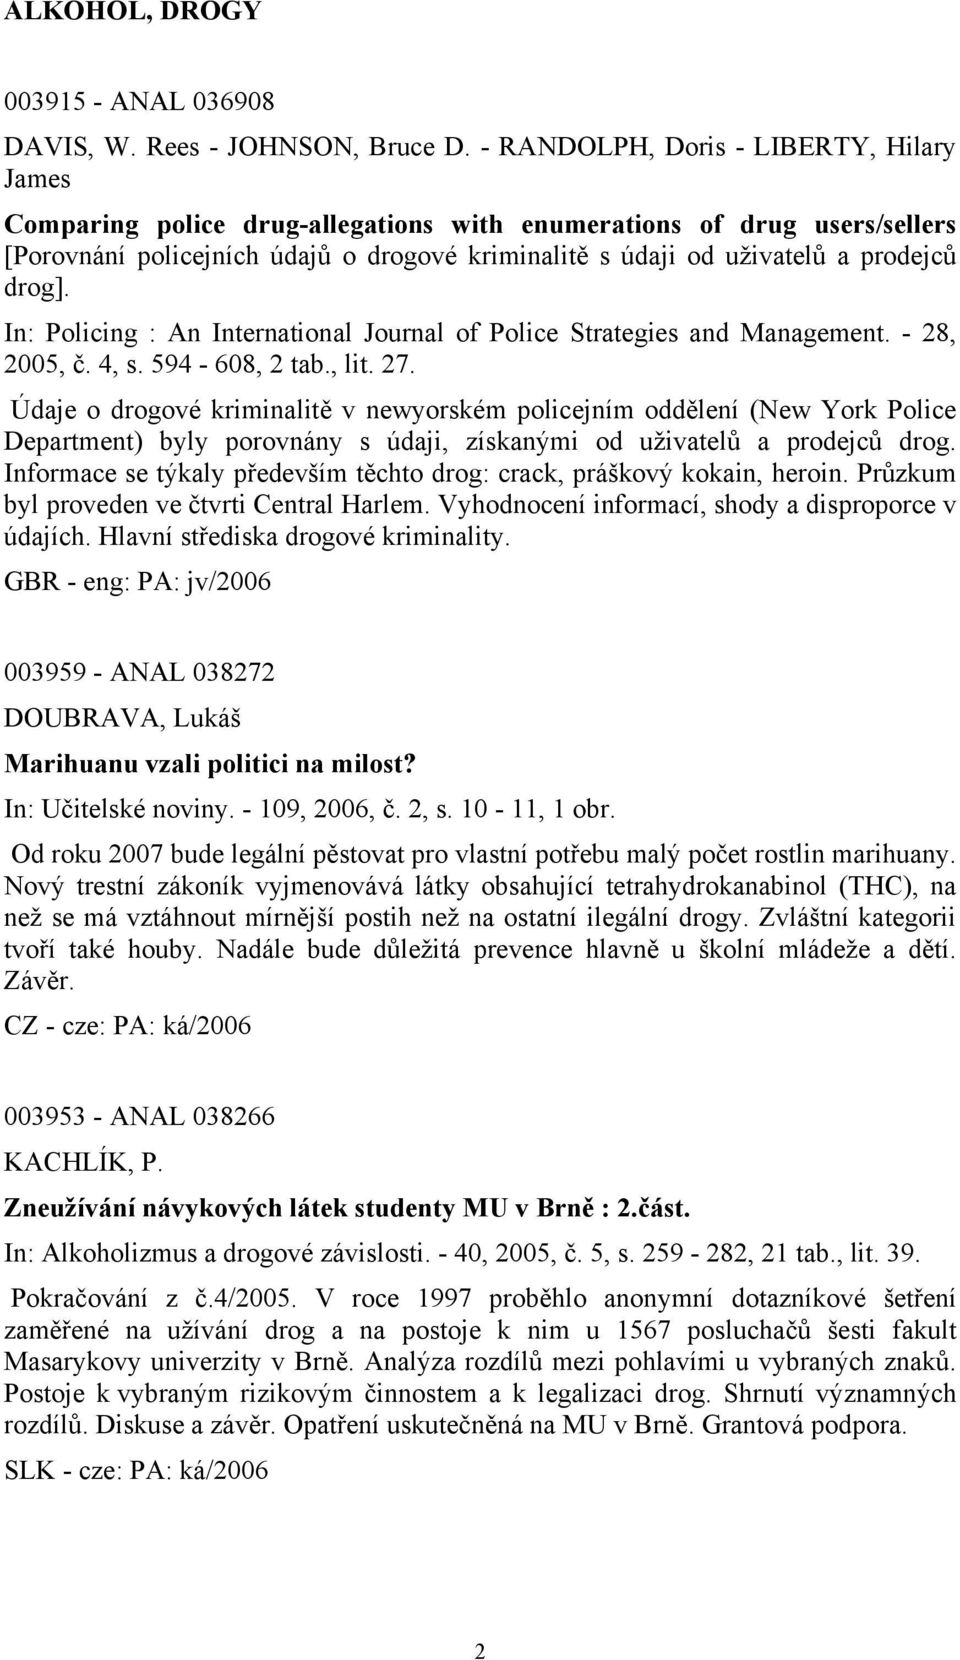 drog]. In: Policing : An International Journal of Police Strategies and Management. - 28, 2005, č. 4, s. 594-608, 2 tab., lit. 27.